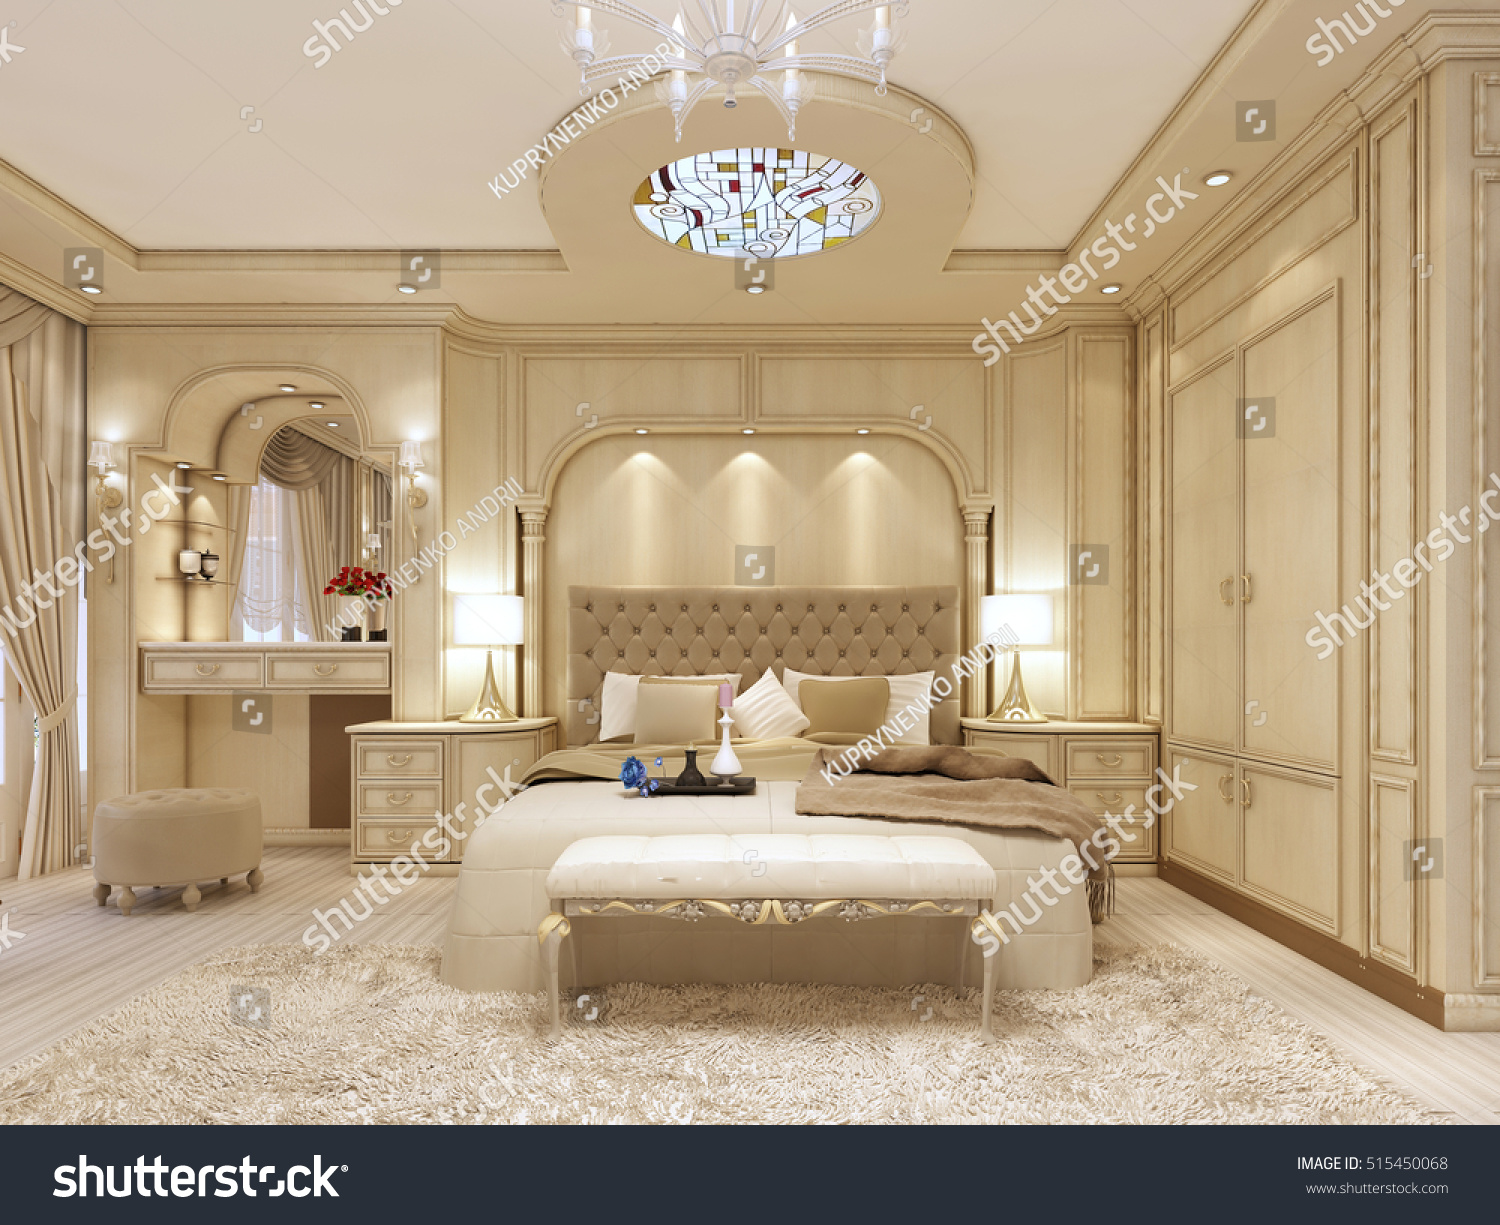 Luxury bed in a large neoclassical bedroom with decorative niche in the  wall  Dressing table. Luxury Bed Large Neoclassical Bedroom Decorative Stock